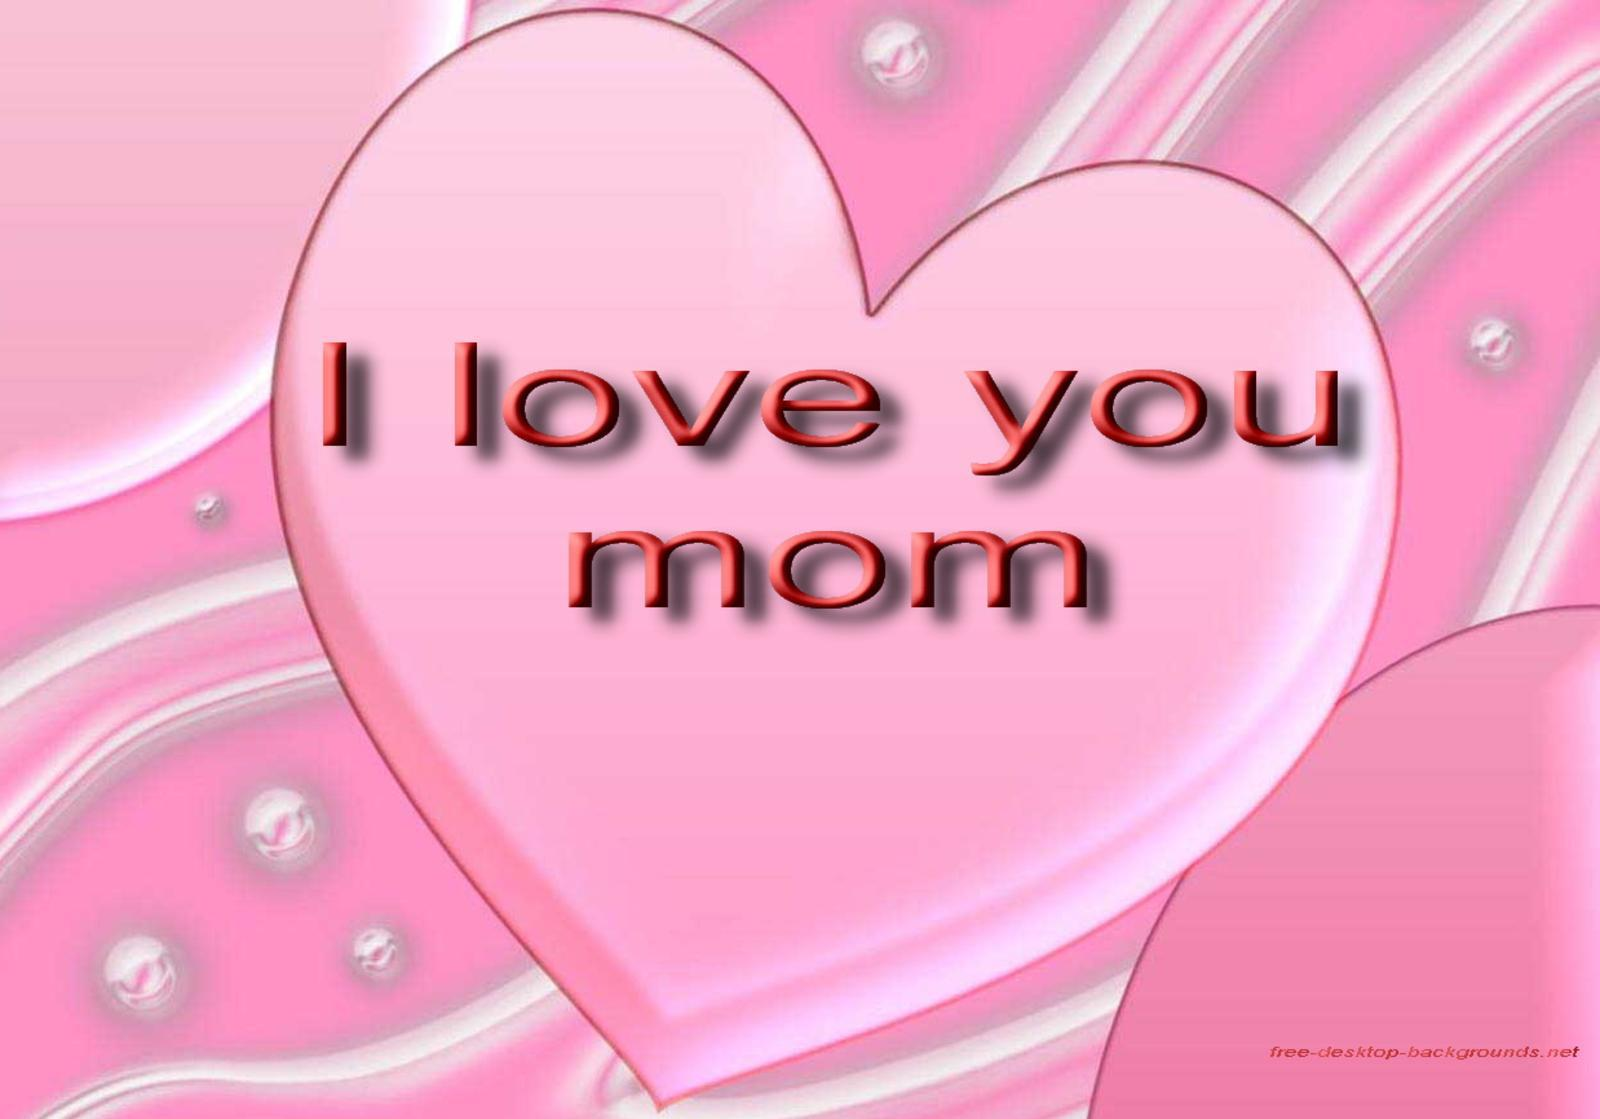 69] I Love You Mom Wallpaper on WallpaperSafari 1600x1119